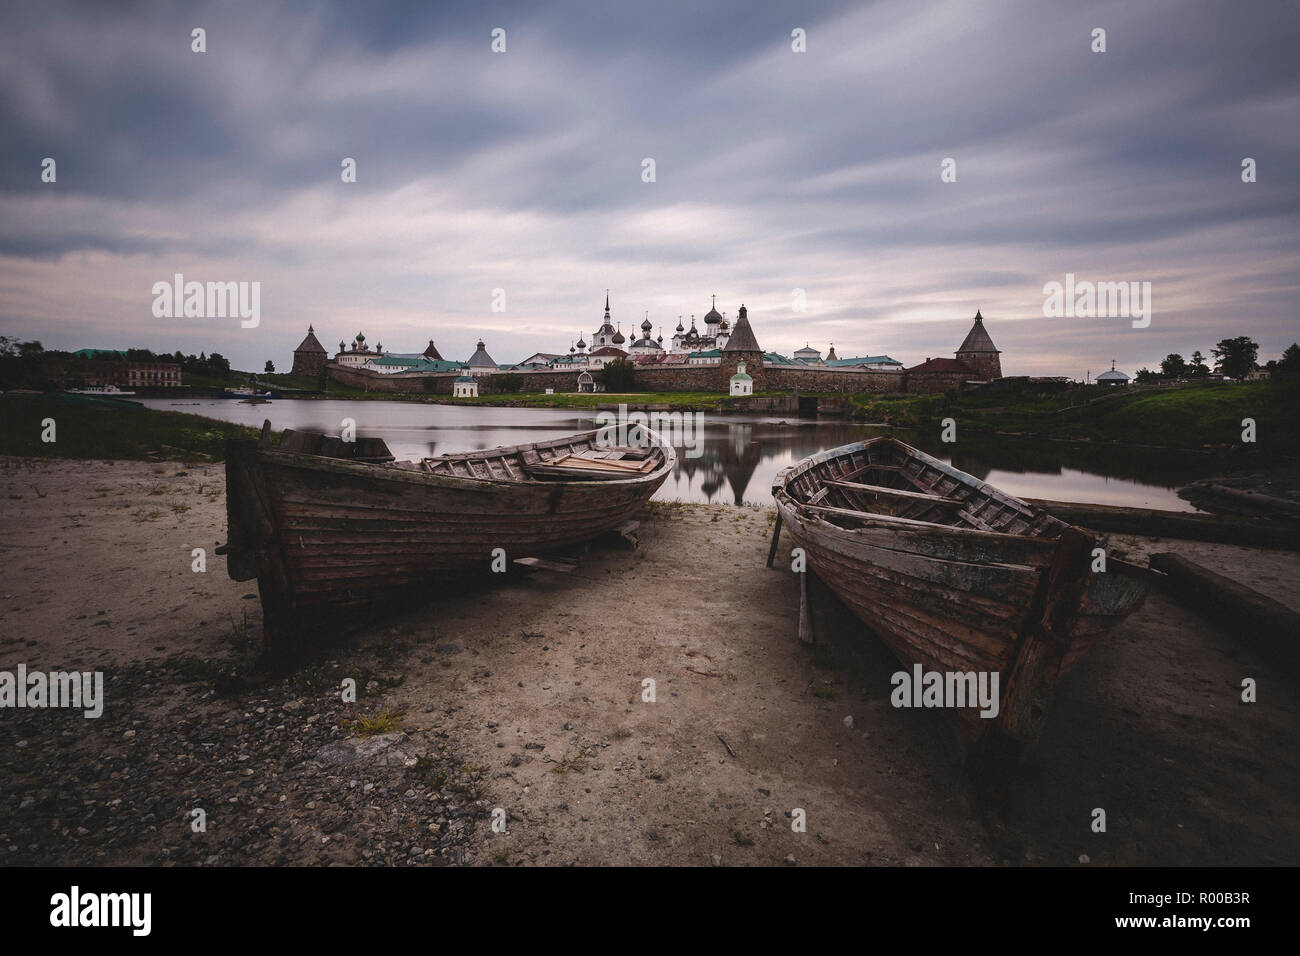 Two old wooden boats on the background of the Solovetsky Monastery, Russia Stock Photo